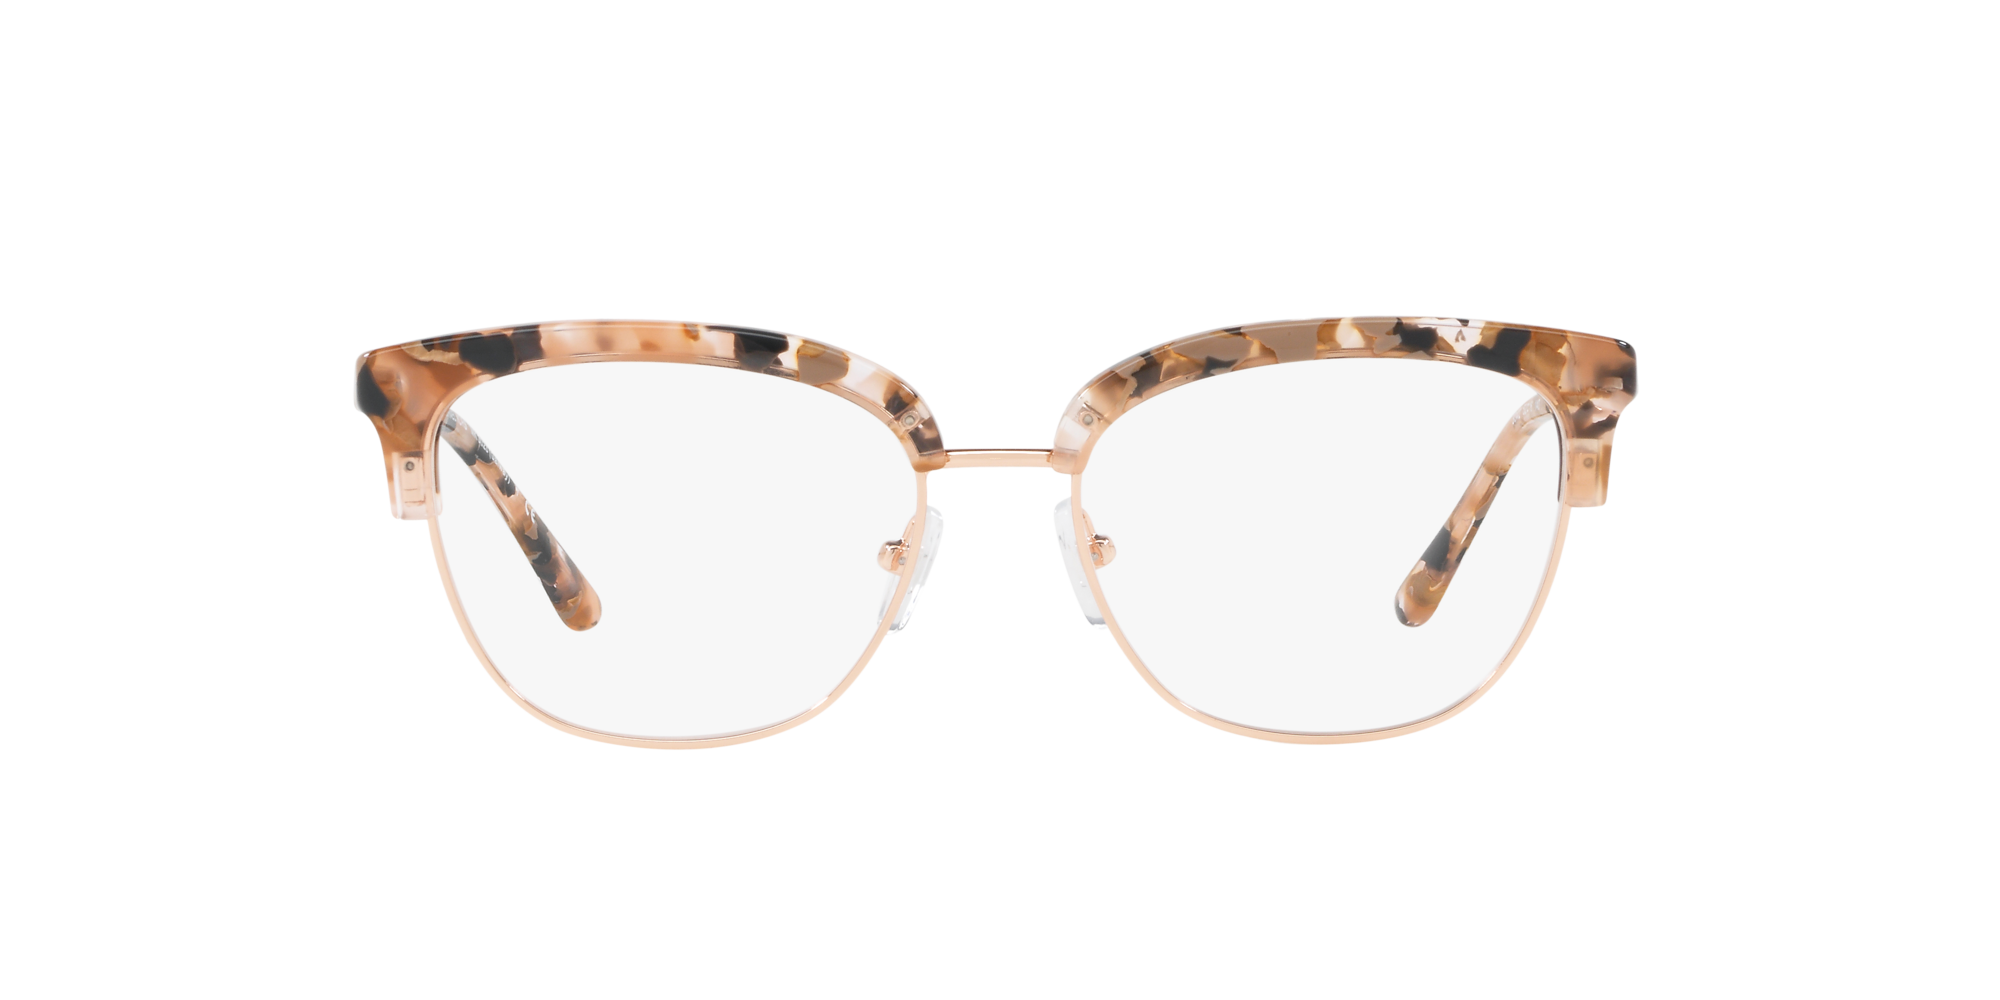 Image for MK3023 GALWAY from LensCrafters   Glasses, Prescription Glasses Online, Eyewear